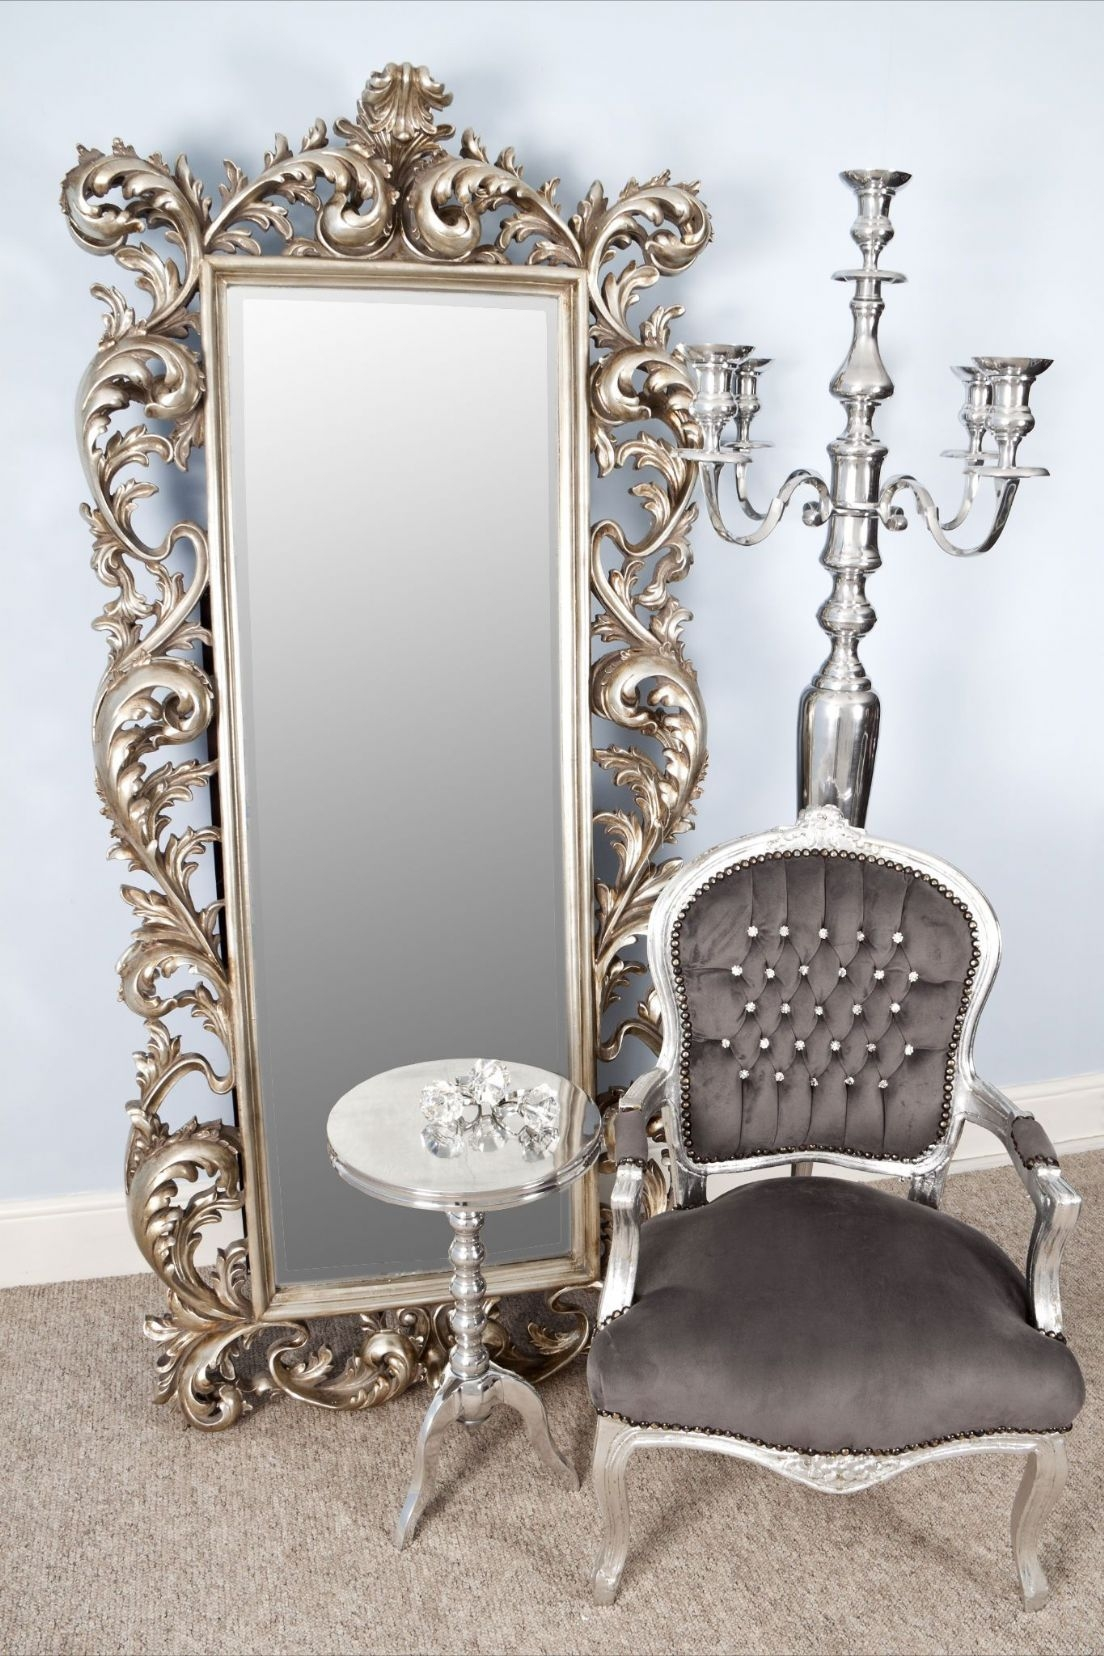 Antique Looking Mirror Best Antique 2017 Throughout Large Ornate Silver Mirror (Image 2 of 15)